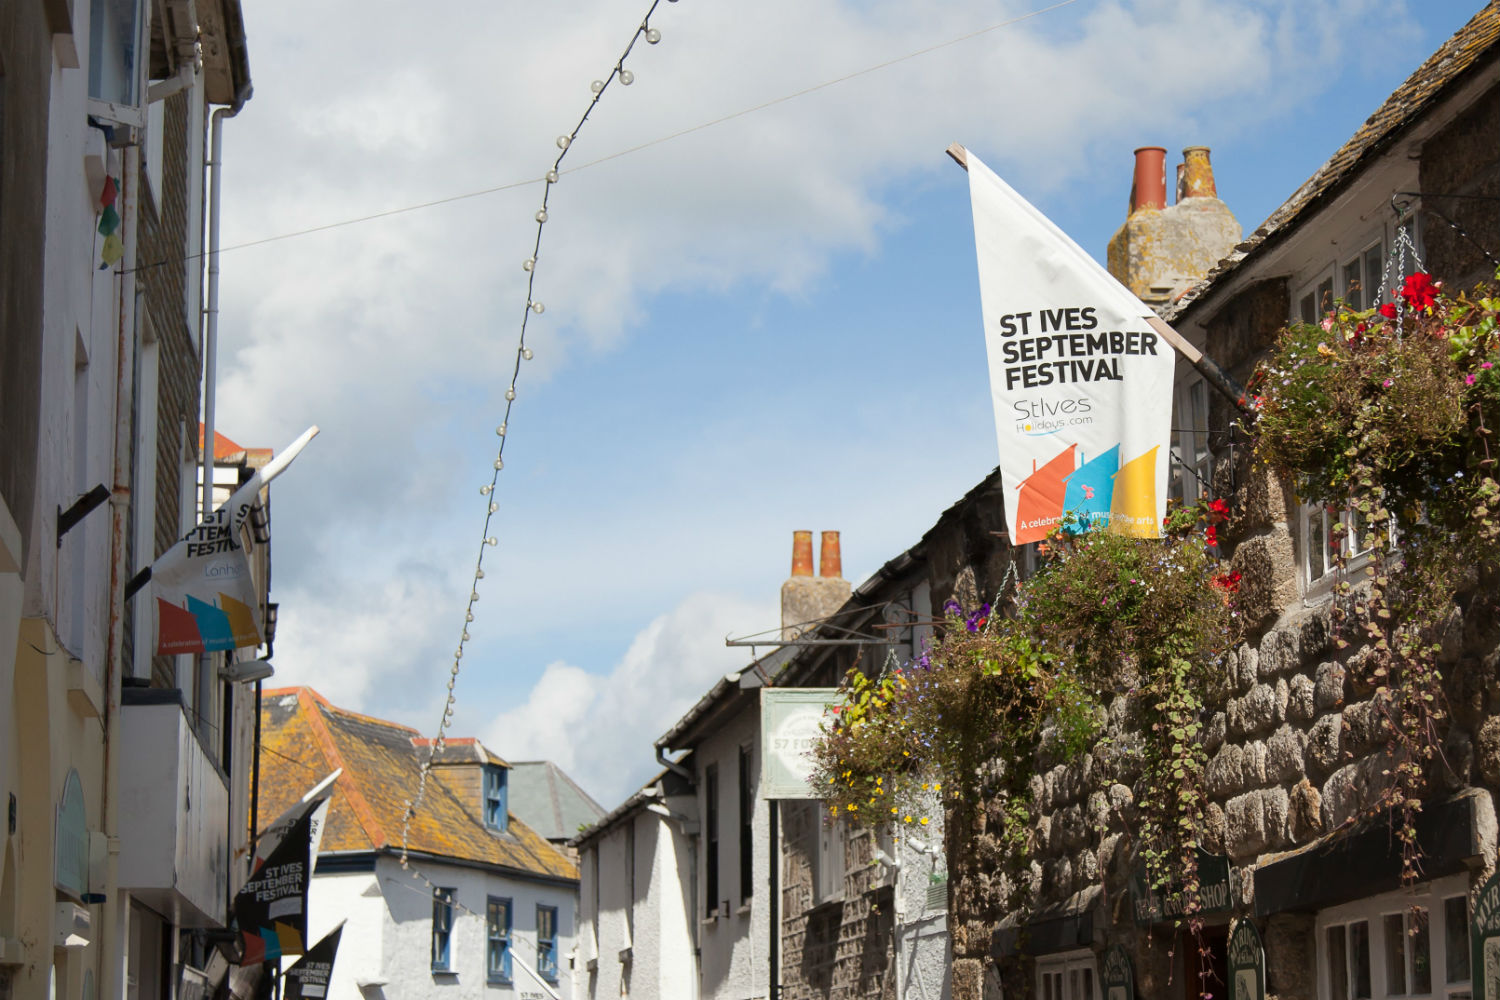 Visit St Ives September Festival